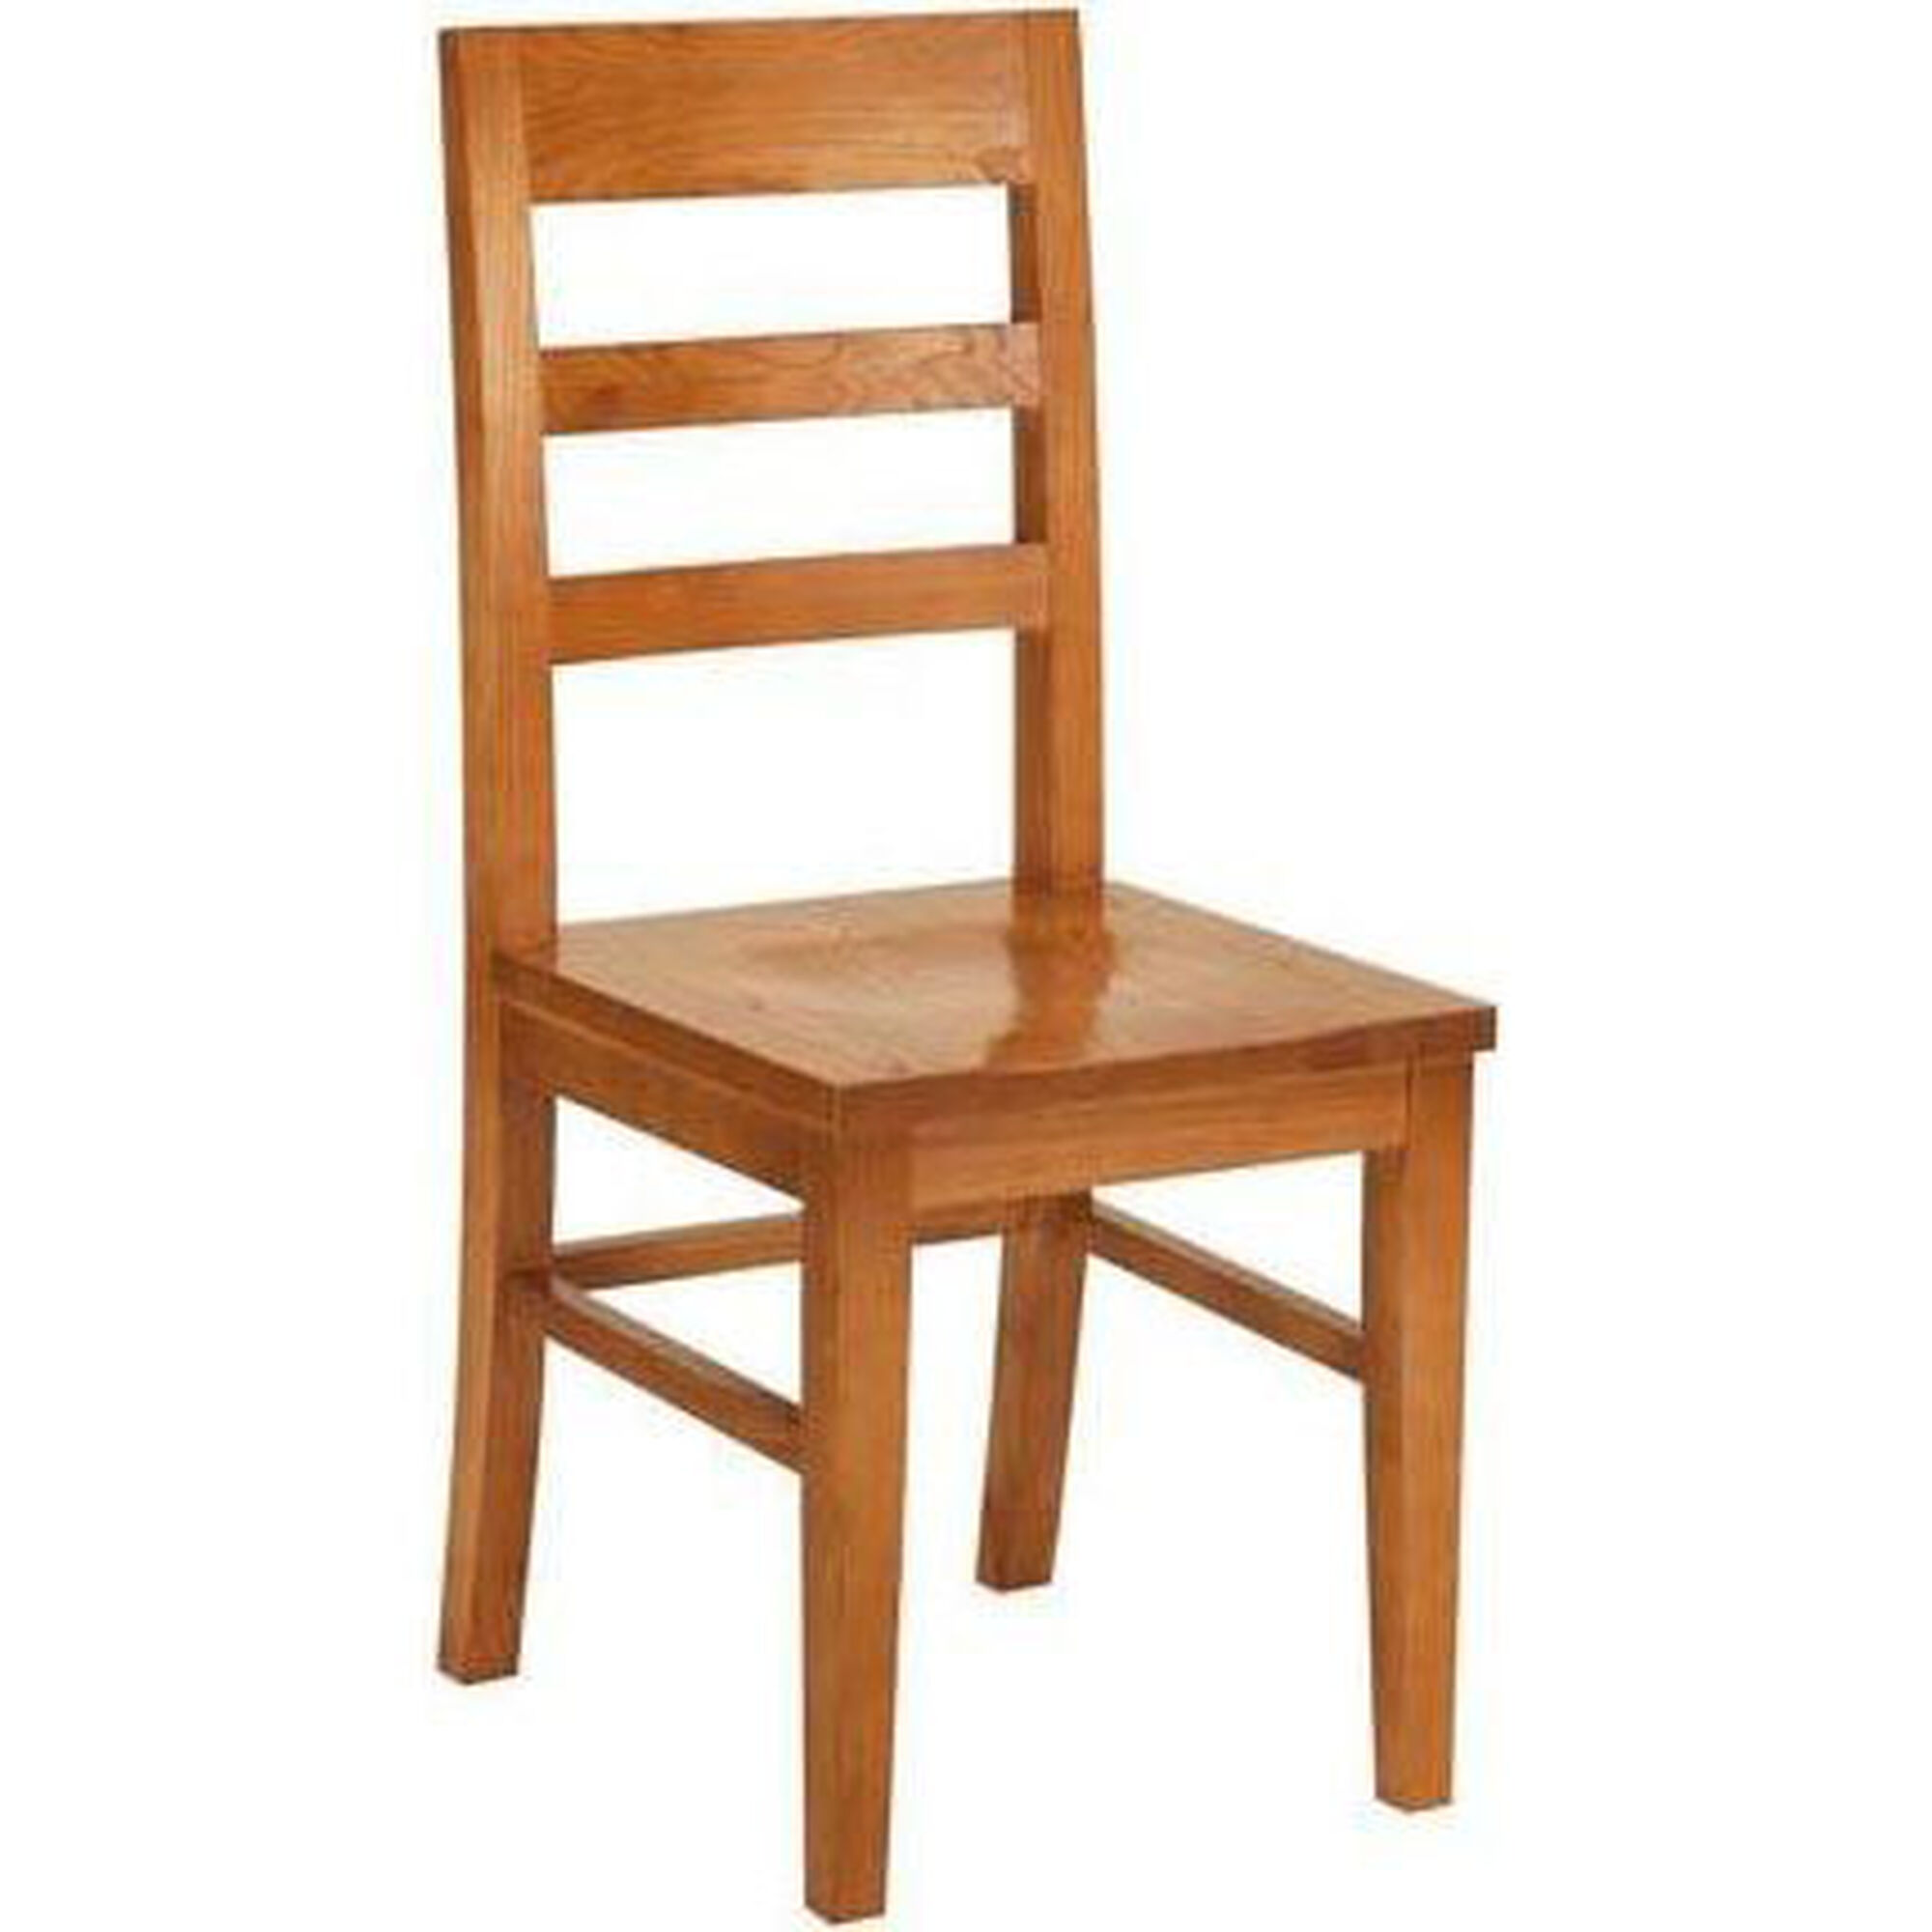 Our side chair is on sale now